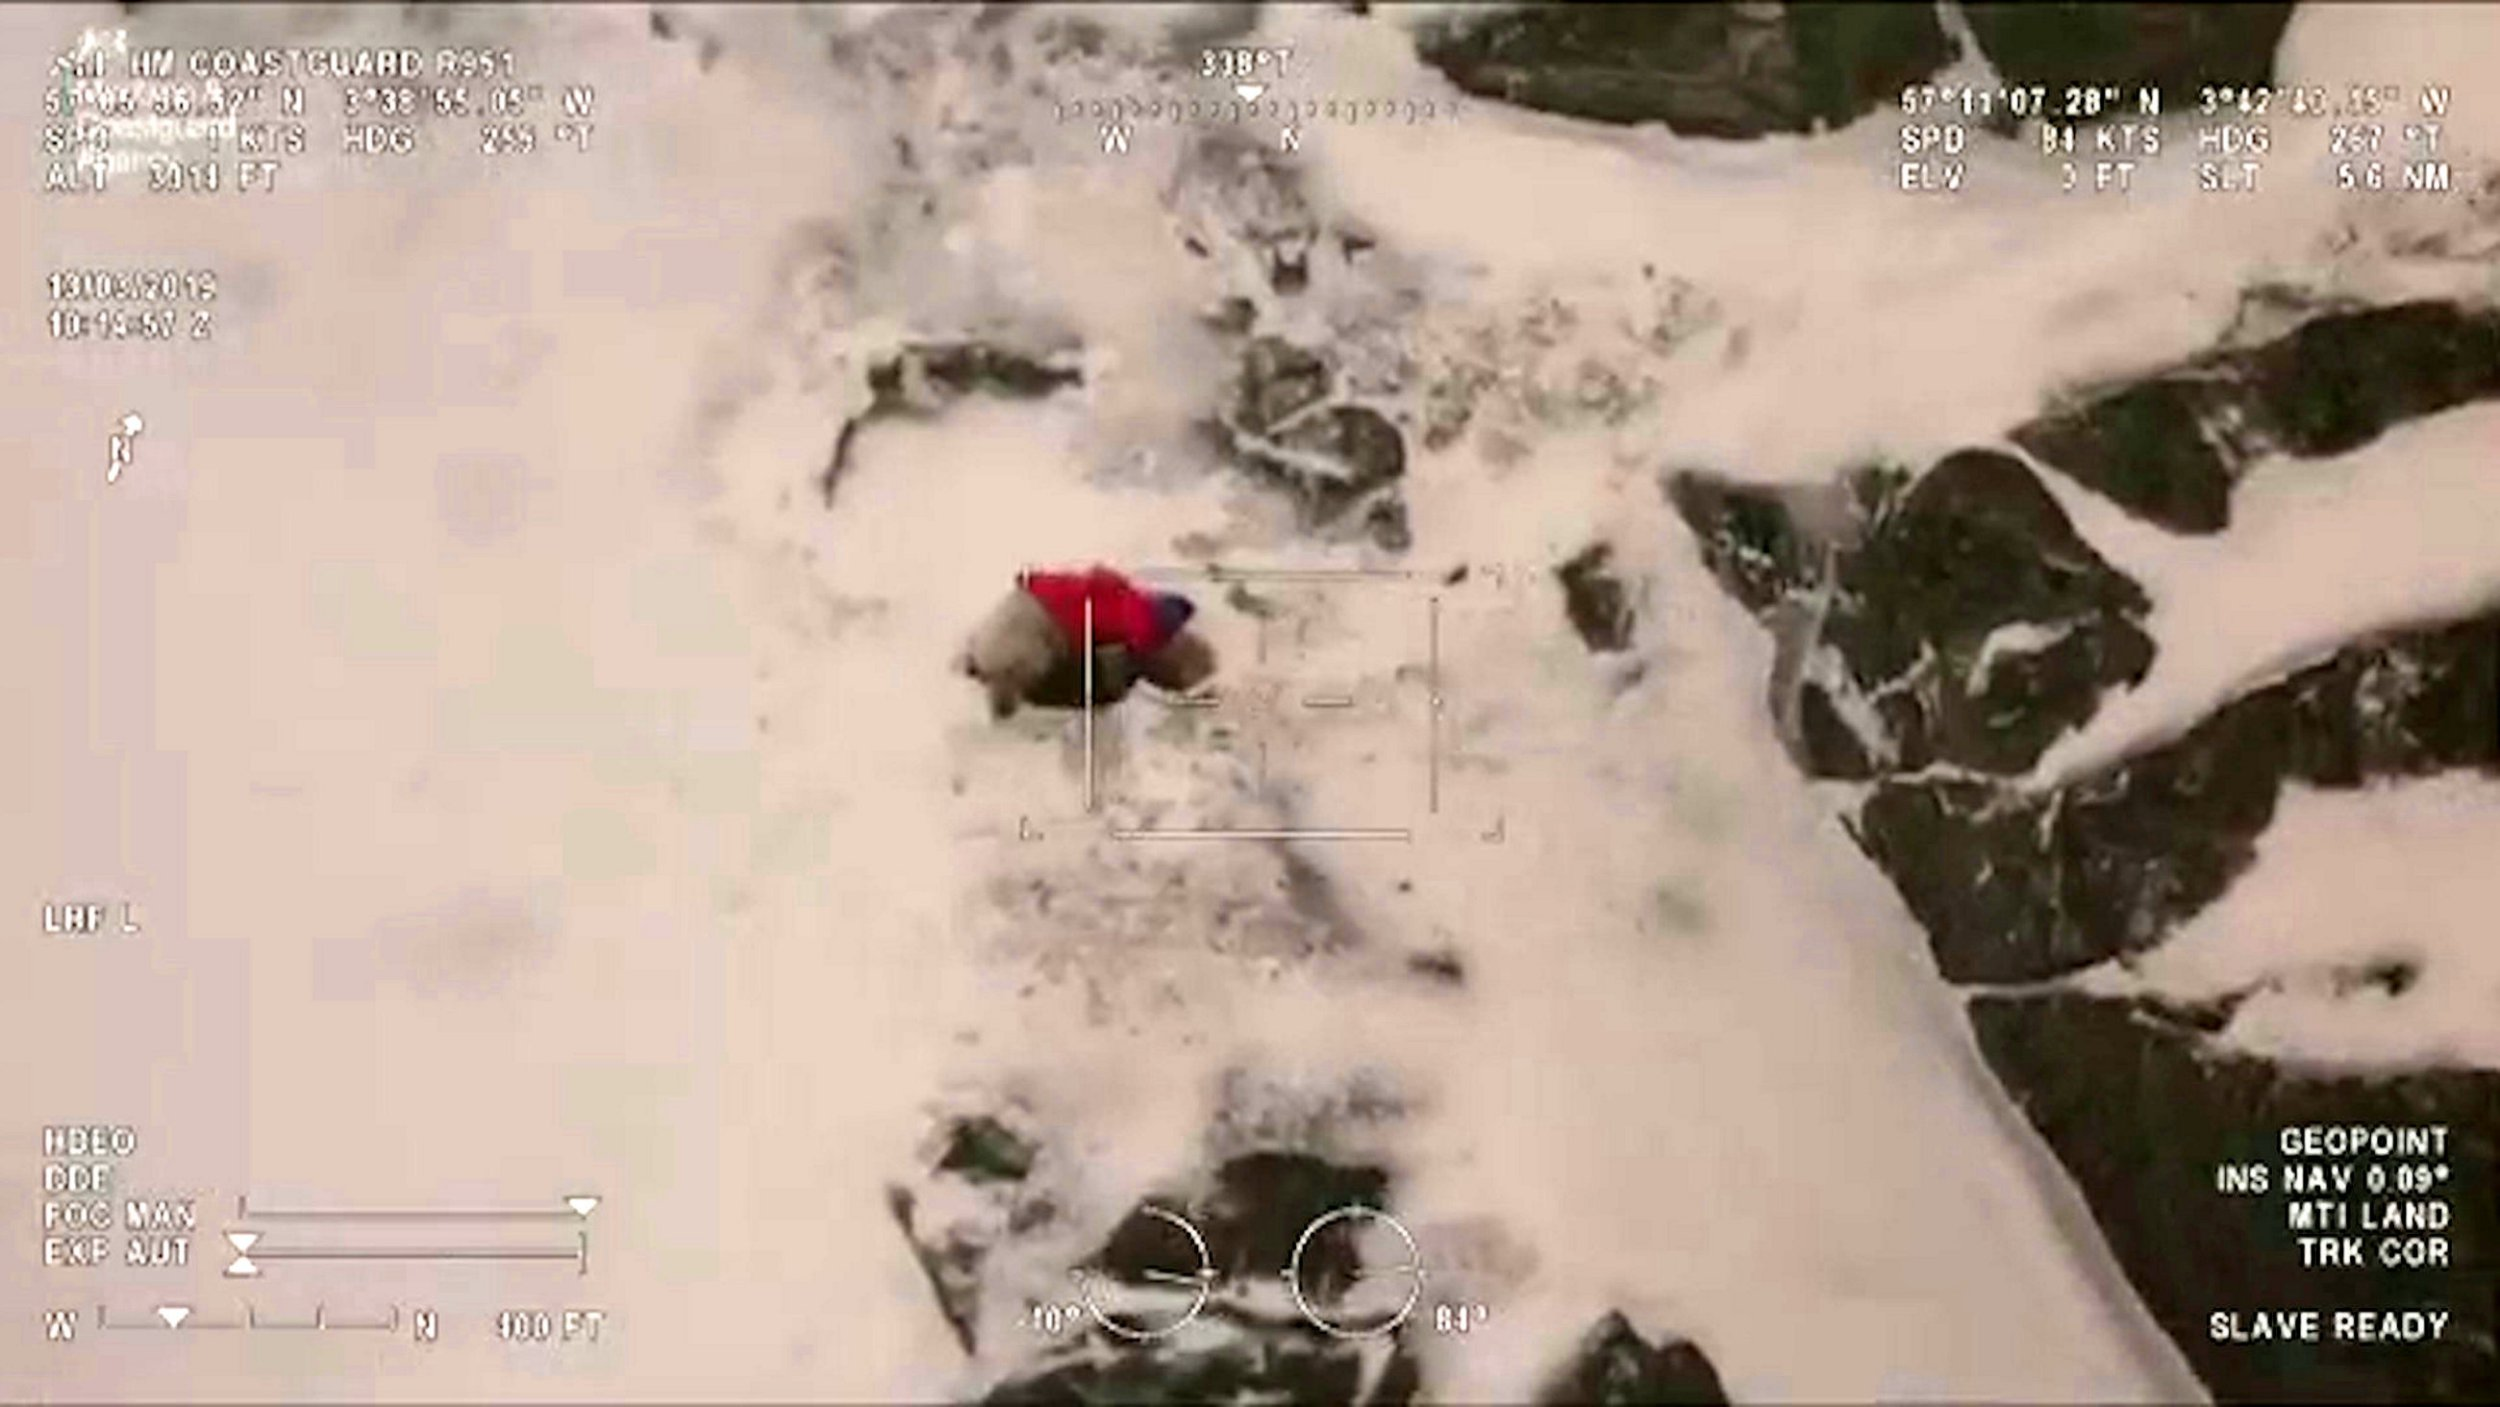 """Video grab from the incredible footage of the Inverness Coastguard helicopter rescuing a dog called Ben from Loch Avon in the Cairngorms- after the canine went missing 48 hours earlier in the bad weather of Storm Gareth .See SWNS story SWSCmountain. This is the heartwarming moment a dog was rescued by a helicopter crew - after it was stranded on a mountain in bad weather for 48 hours.Ben the dog ran off while on a trip near Loch Avon, the Cairngorms, on Monday, and got lost in the severe weather conditions of Storm Gareth.But today (Wed) Inverness Coastguard helicopter crew, who were on a training exercise, rescued Ben after the Cavachon dog was spotted on a narrow ledge.Putting the crews' skills to the test, winchmen were dropped off to collect the adorable dog which appeared to be """"terrified and cold""""."""